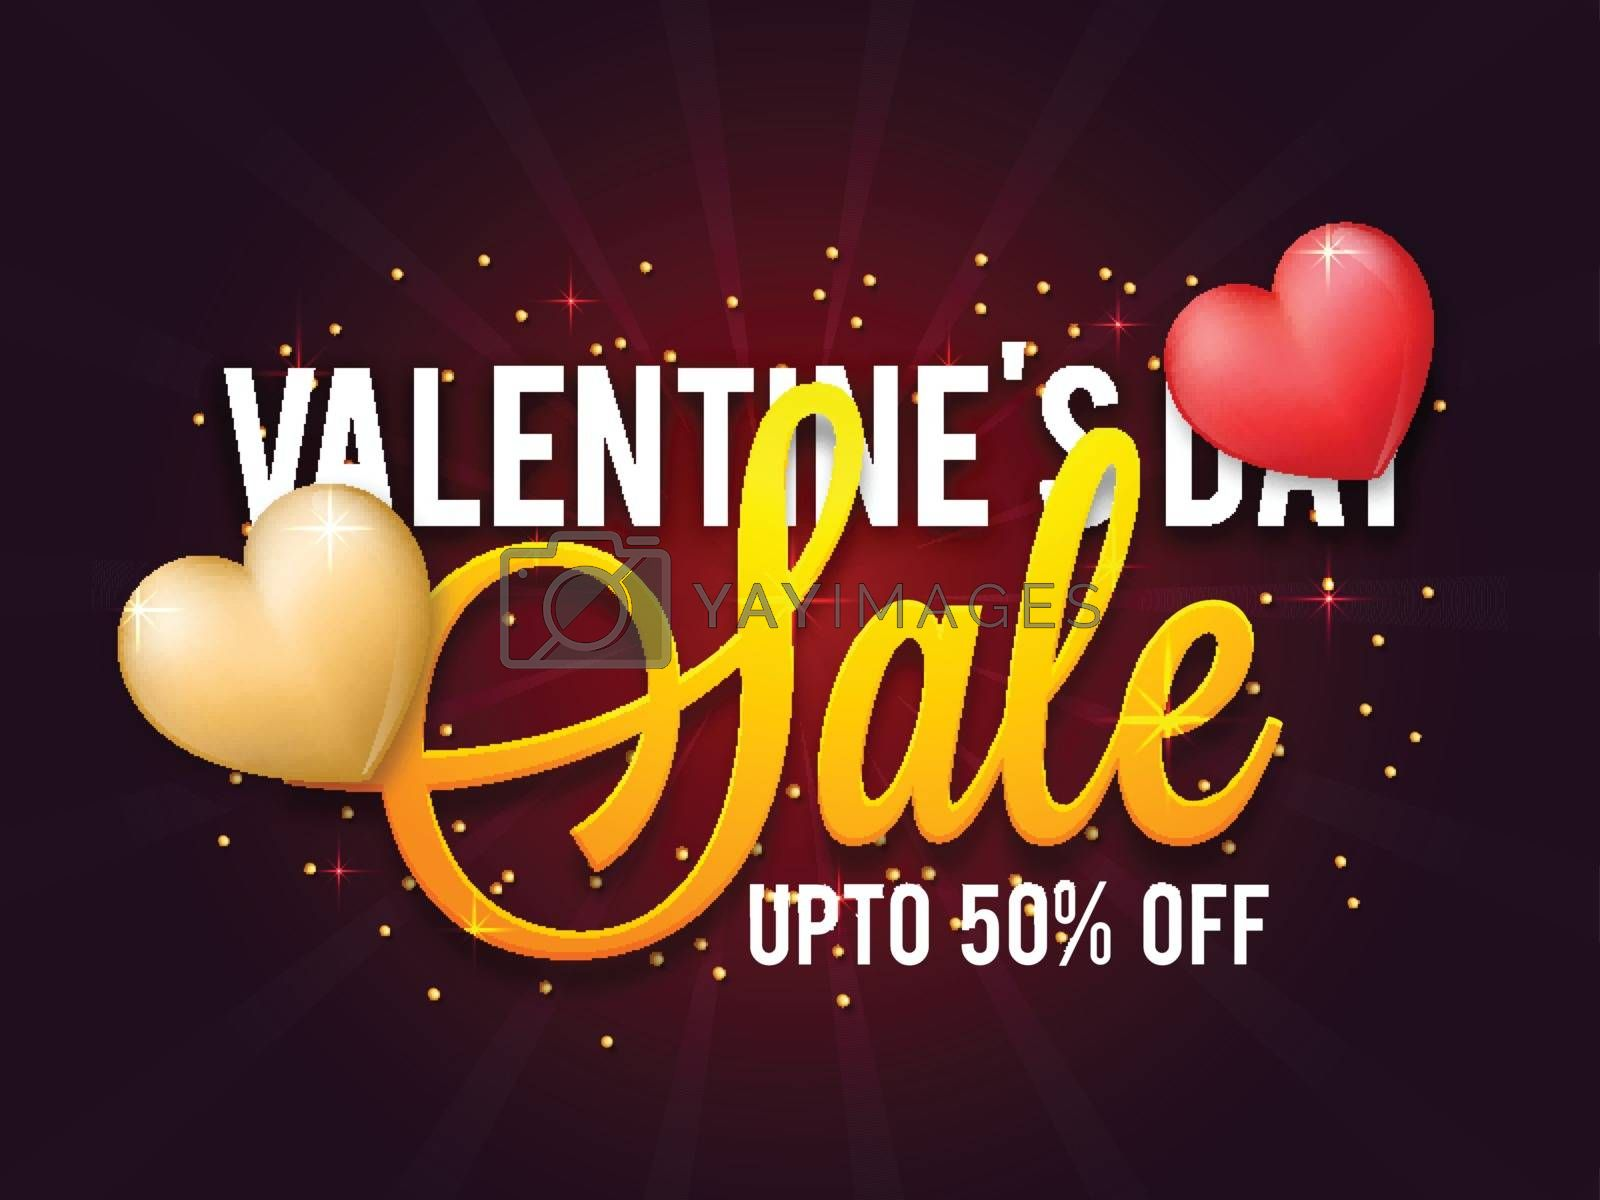 Valentine's Day Sale with upto 50% Off. Glossy Hearts decorated Poster, Banner or Flyer design.